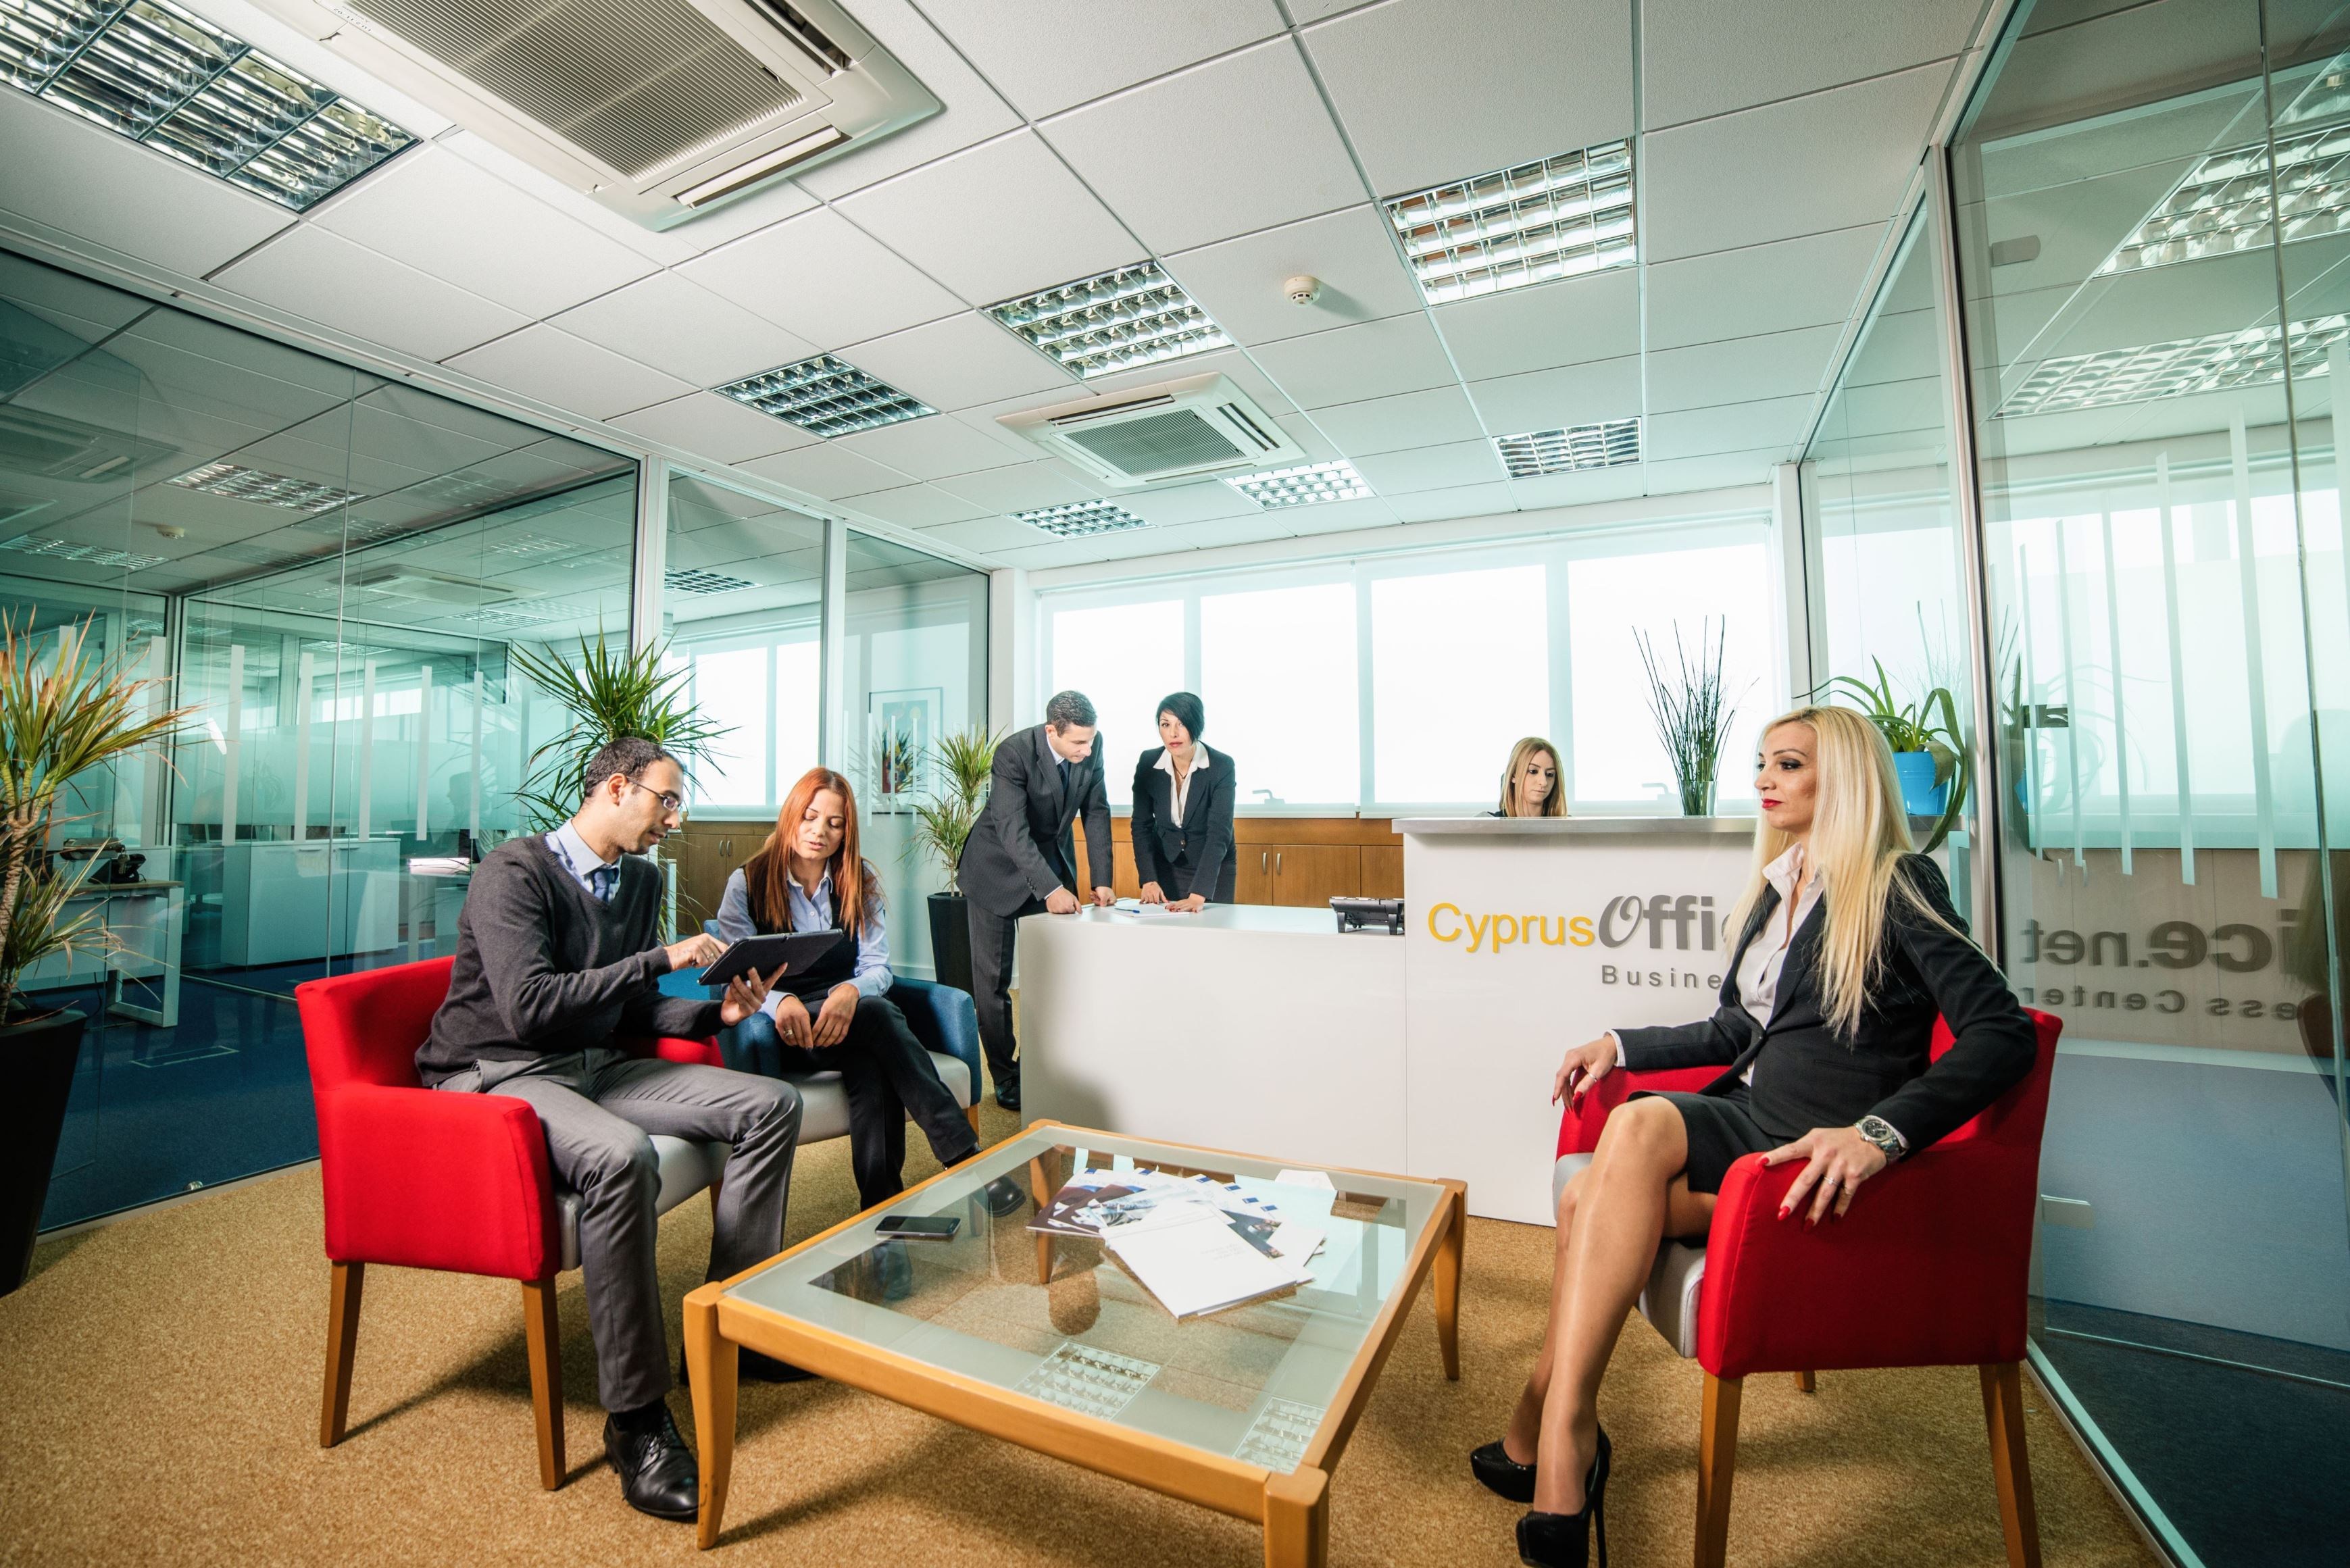 Cyprus Office serviced Office staff and management has vast experience Cyprus Office serviced Office staff and management has vast experience in providing office space and other similar type of services to business people.